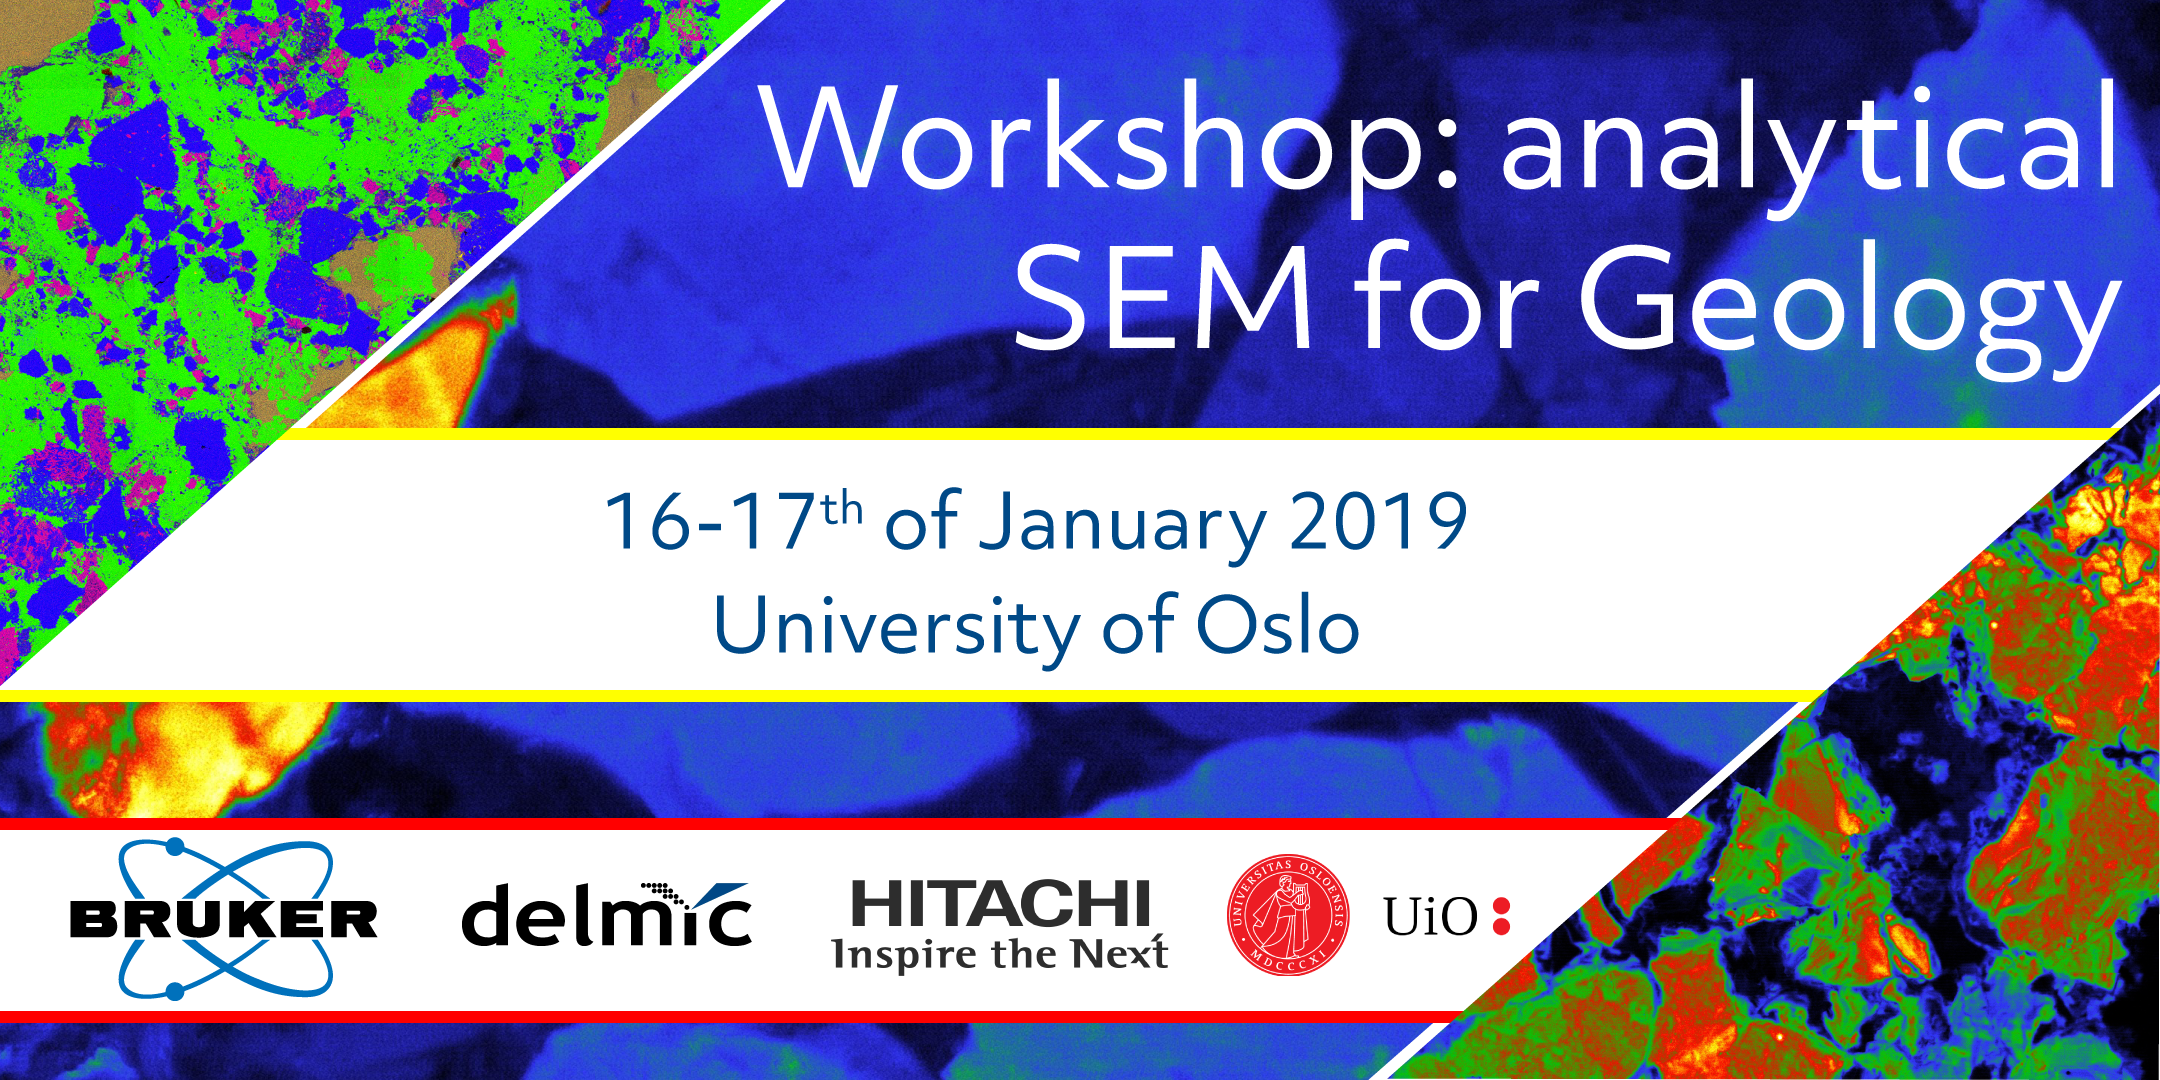 Join the workshop 'Analytical SEM for Geology' by Delmic, Hitachi, Bruker and the University of Oslo